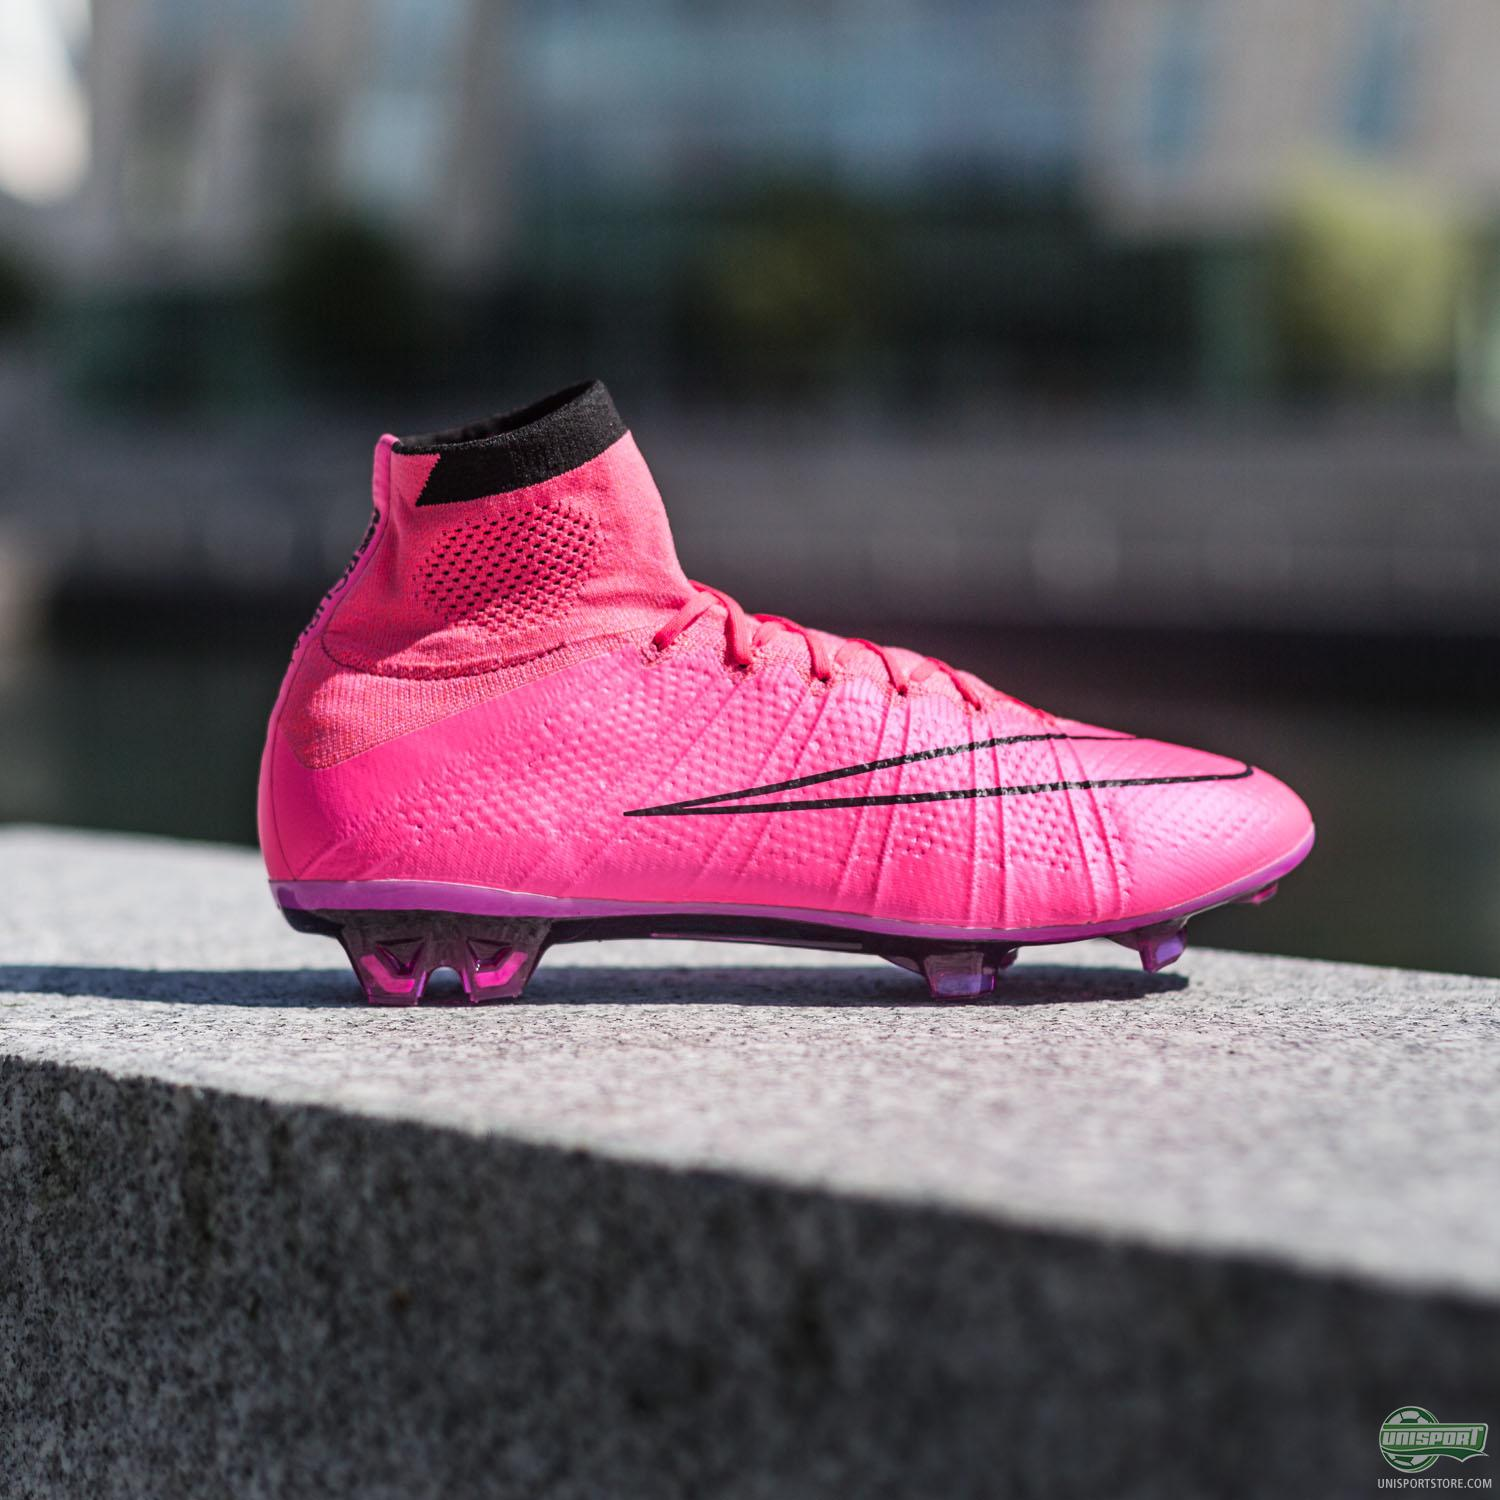 The Ultimate Nike Mercurial Colourway Hyper Pink From The